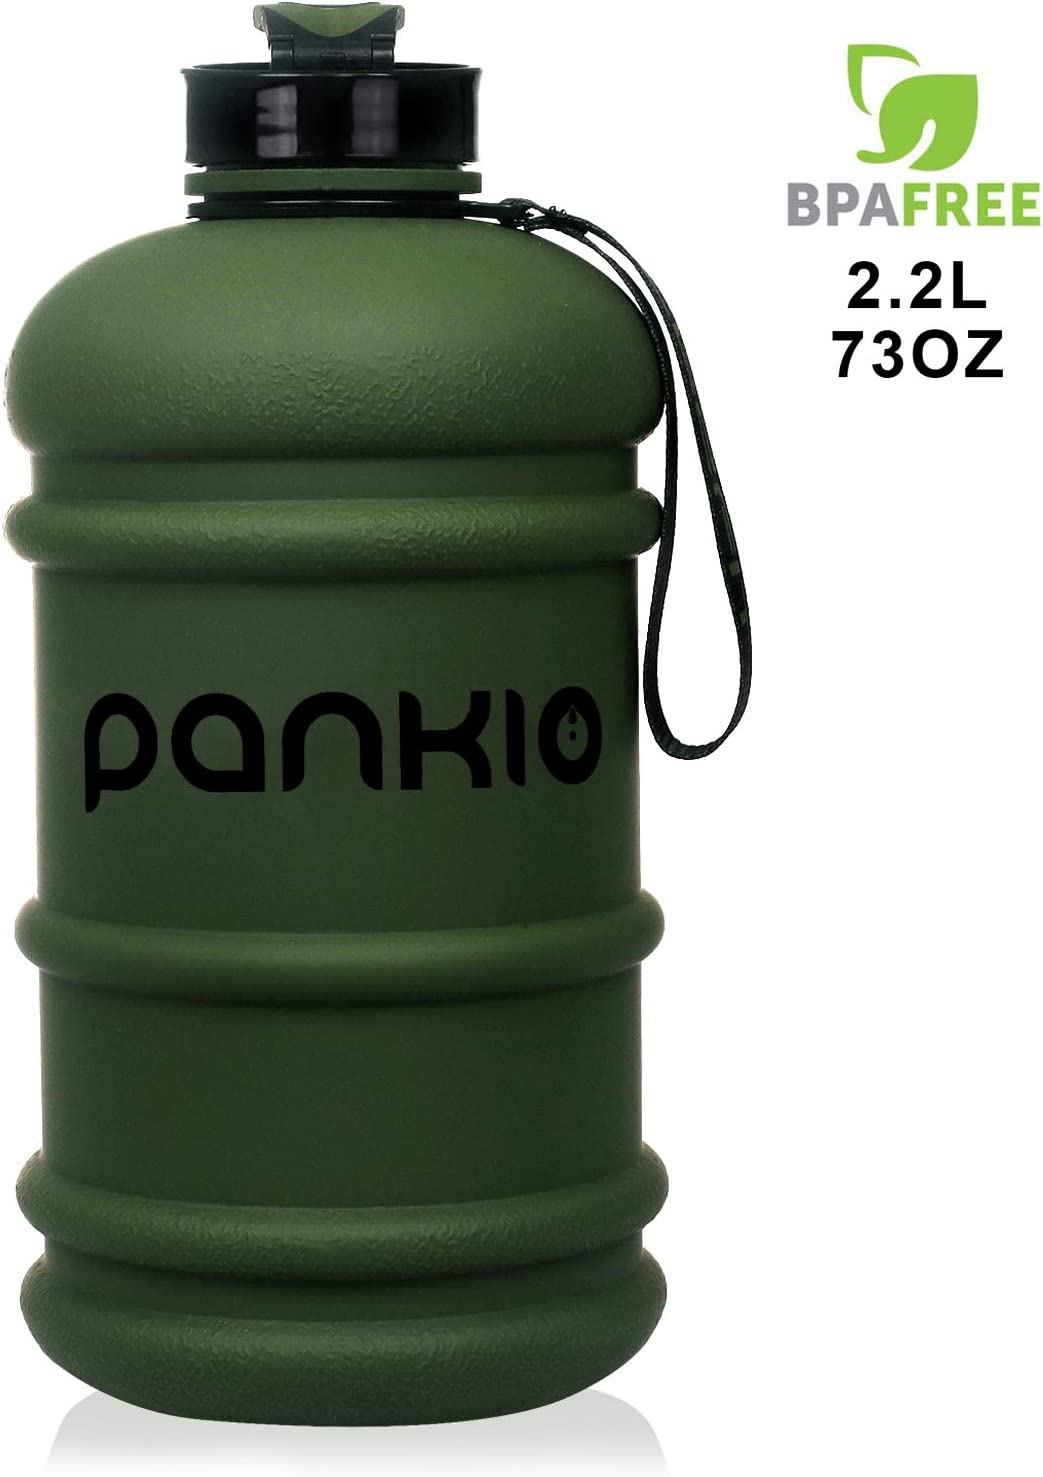 PANKIO Water Jug 2.2L Big Water Bottle 73OZ Half Gallon Sports Water Bottle Big Capacity Leakproof Container BPA Free Water Bottles for Fitness Gym Yoga Travel Cycling Camping Outdoor